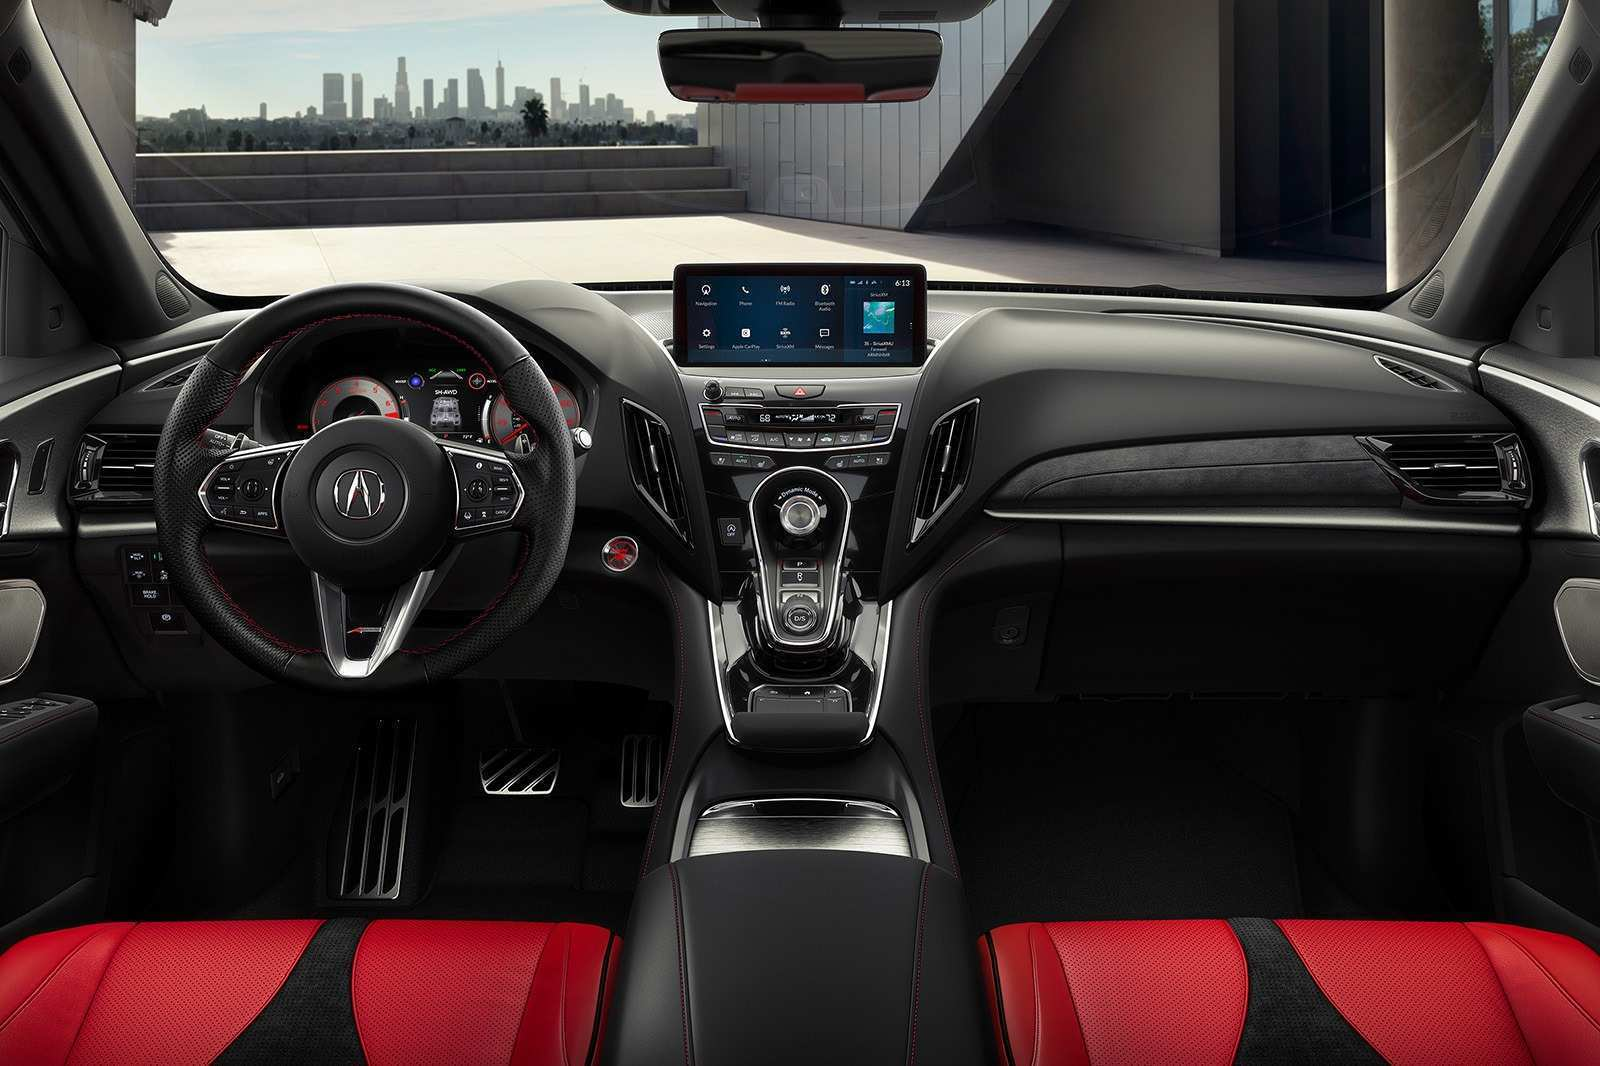 52 Great 2019 Acura Price New Concept for 2019 Acura Price